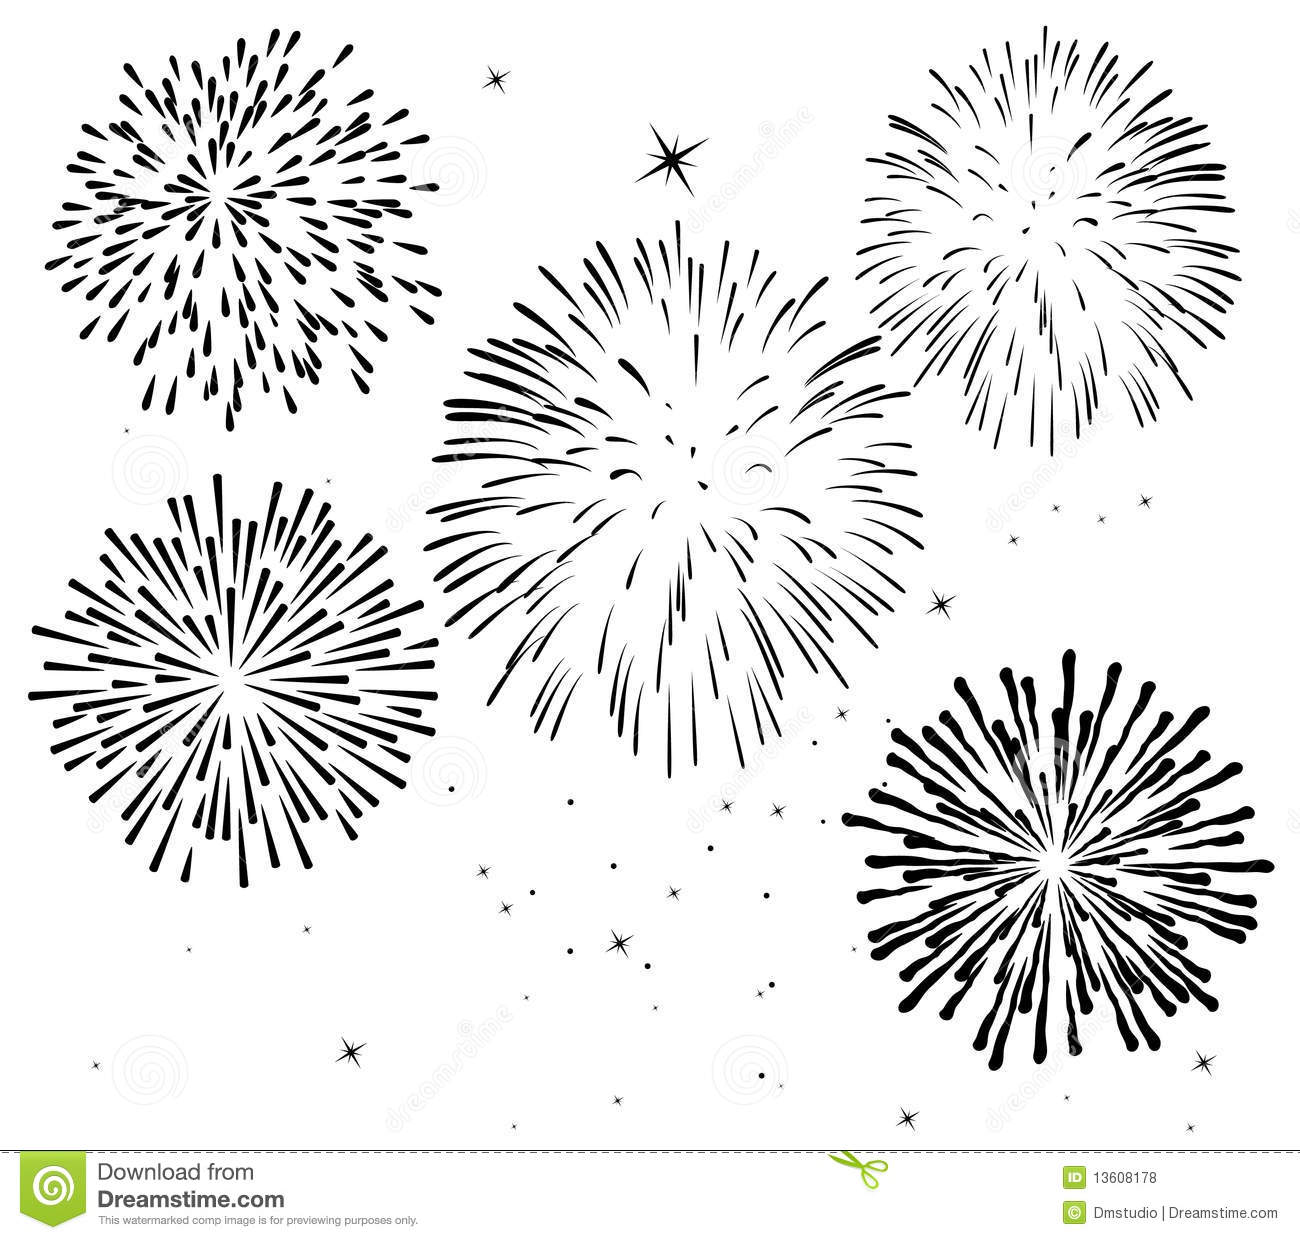 Fireworks Royalty Free Stock Photos Image 13608178